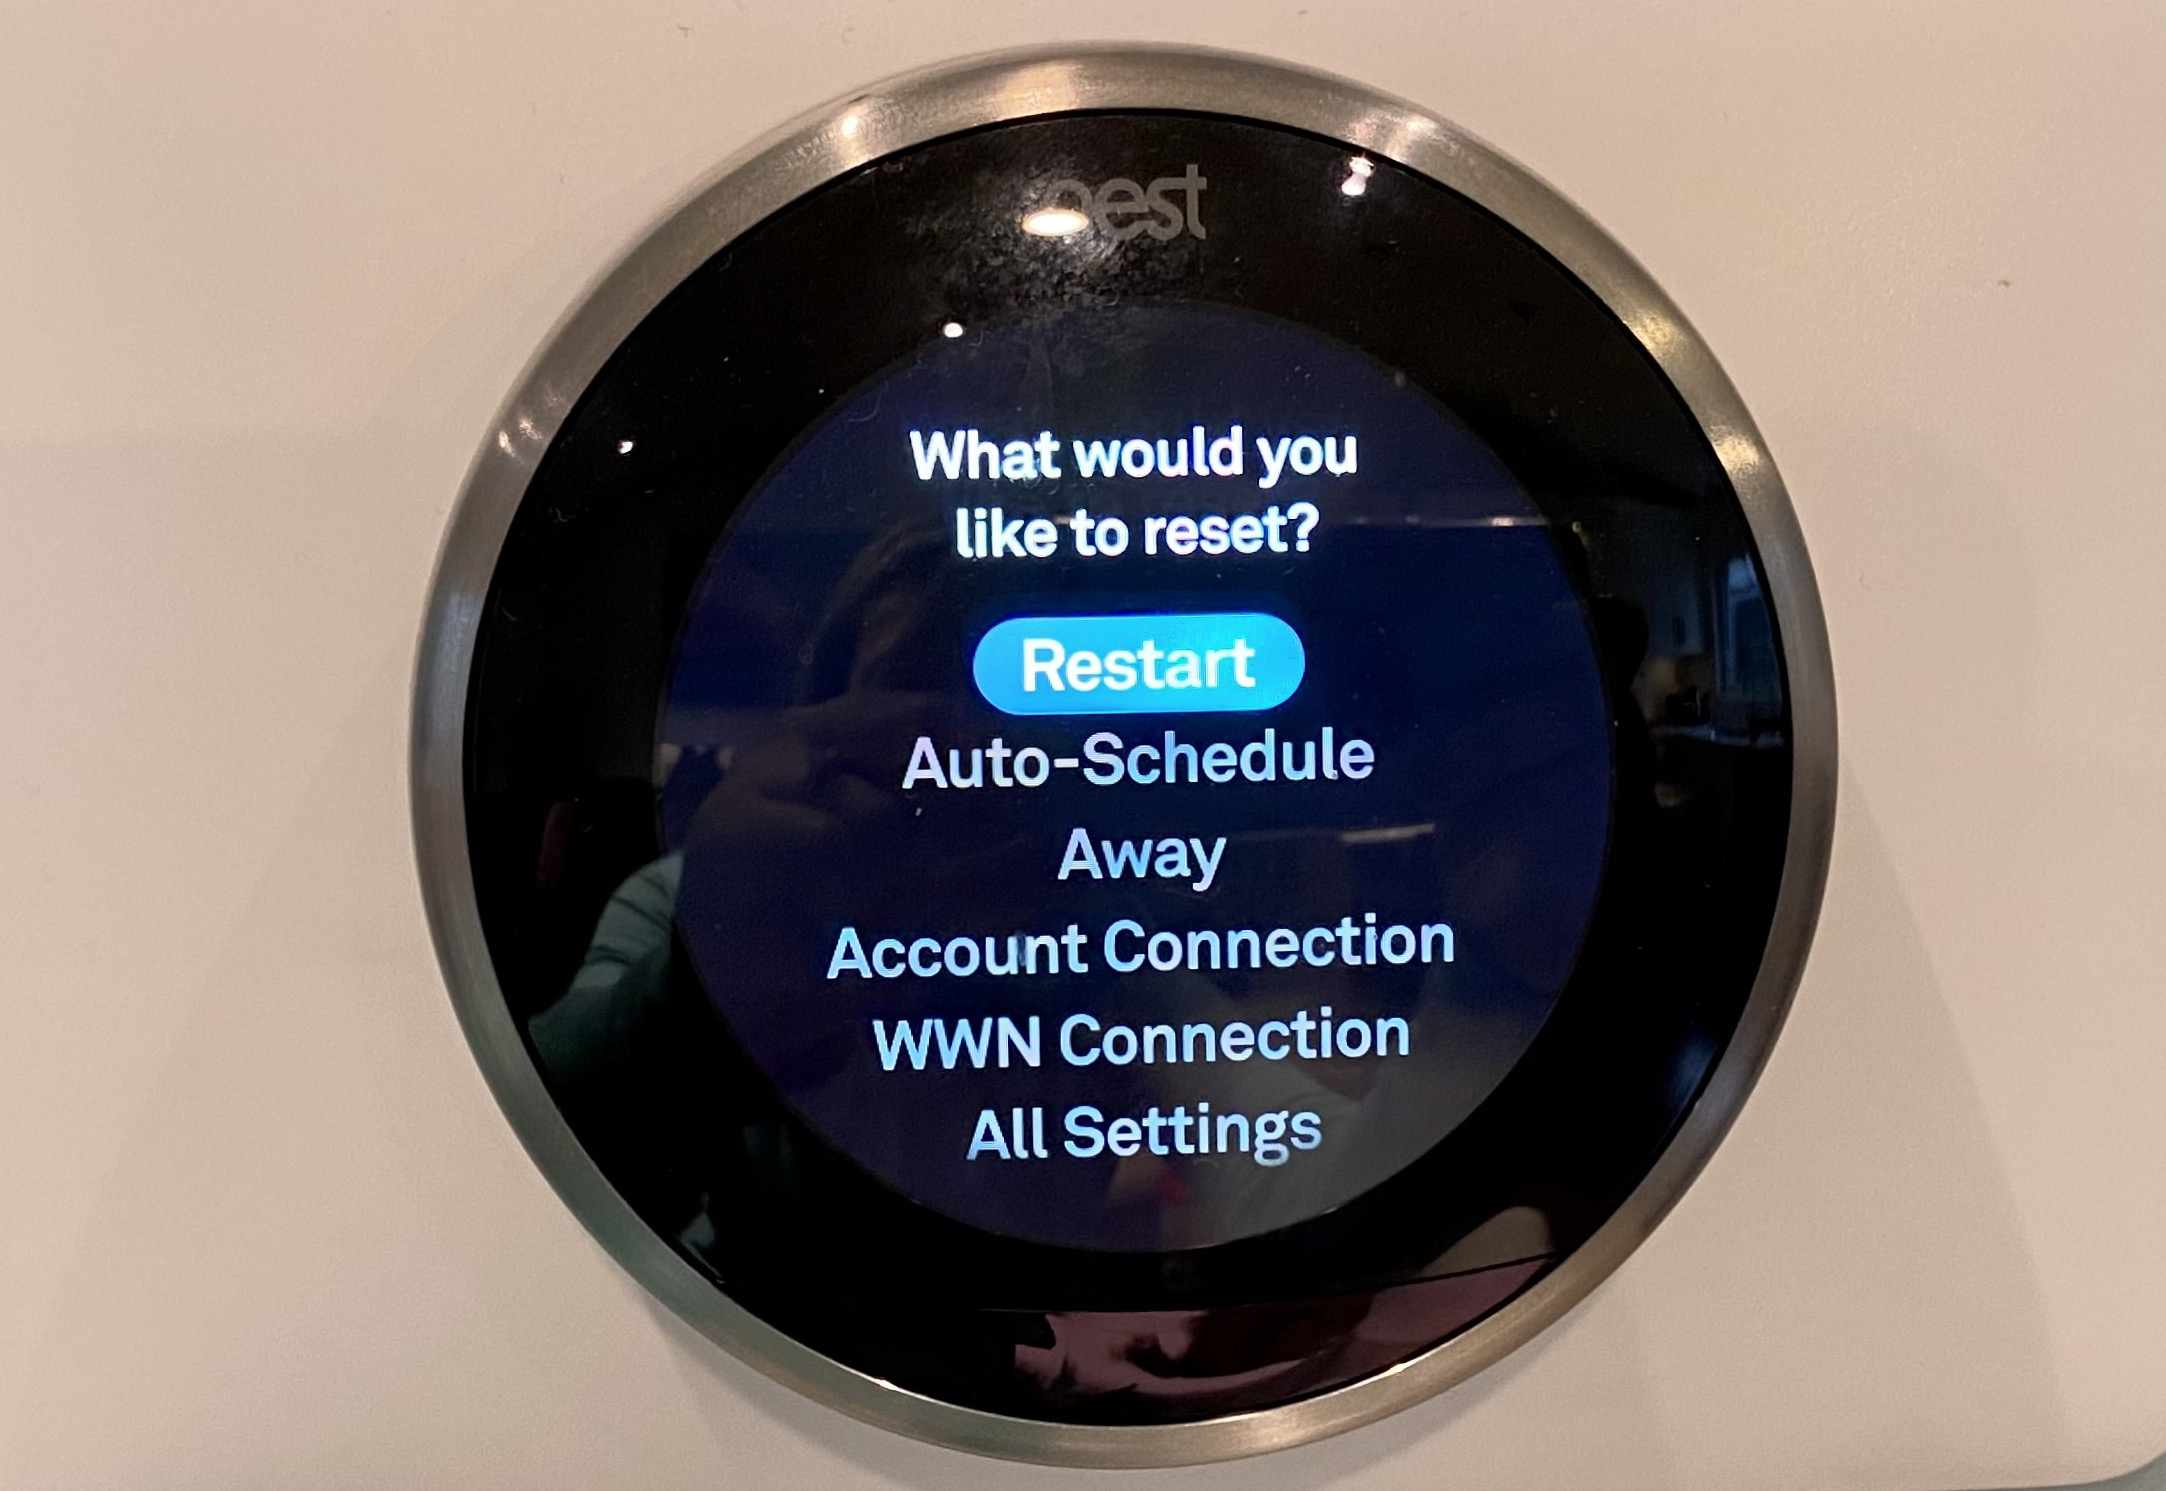 The menu on the Nest thermostat selecting Restart.